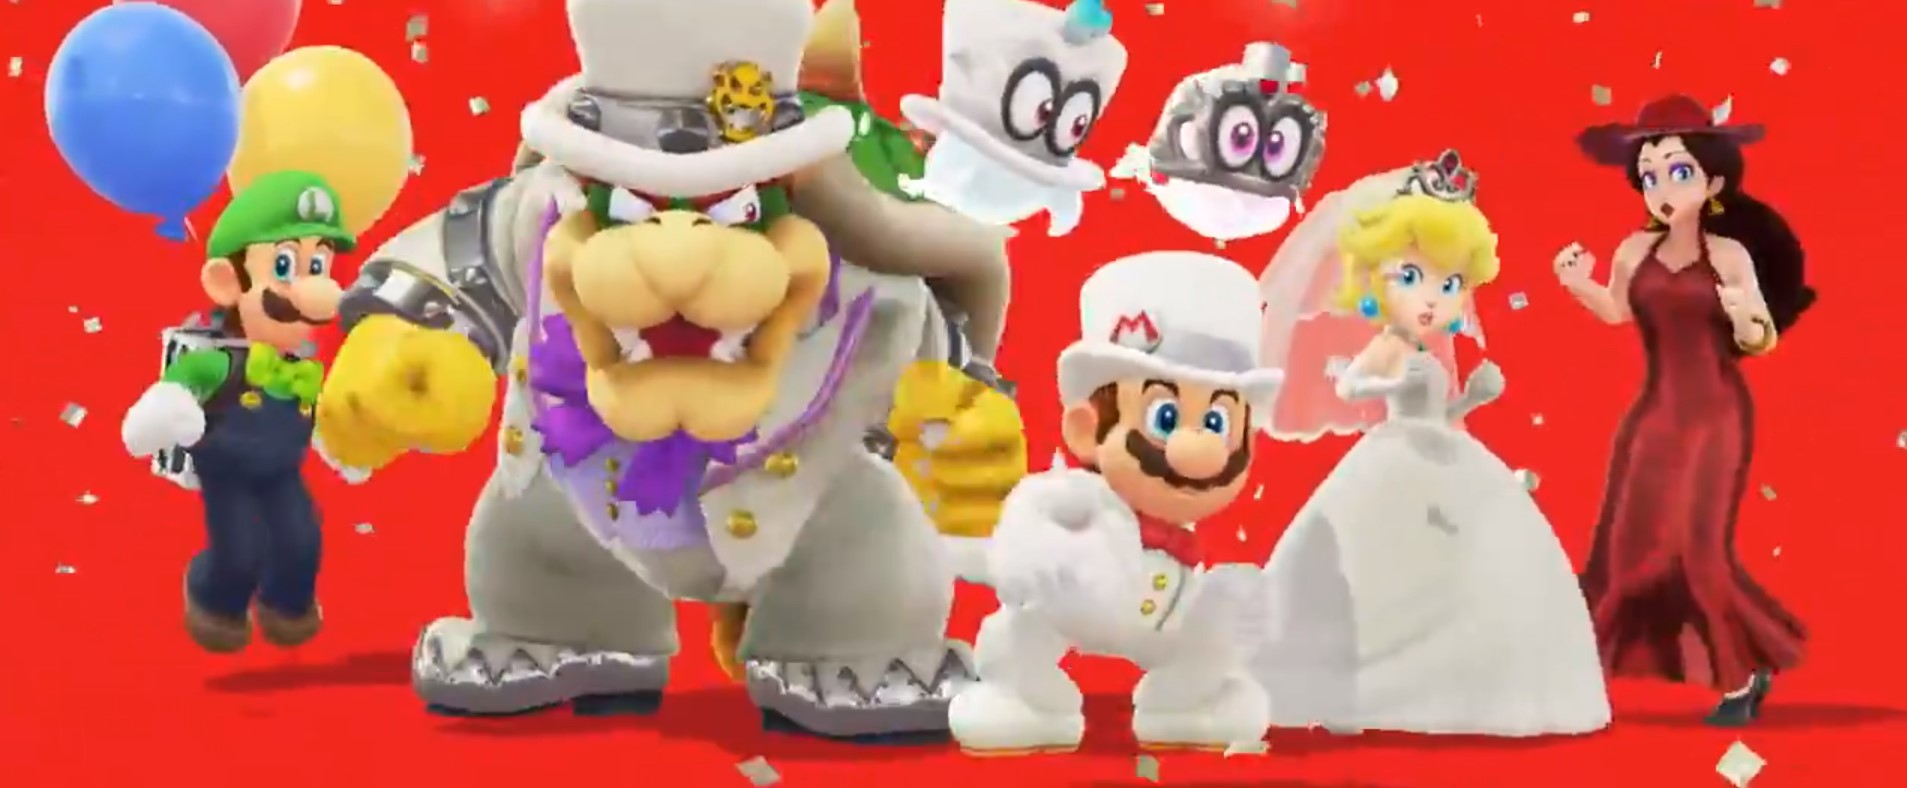 Looking Back On A Year Of Super Mario Odyssey Updates